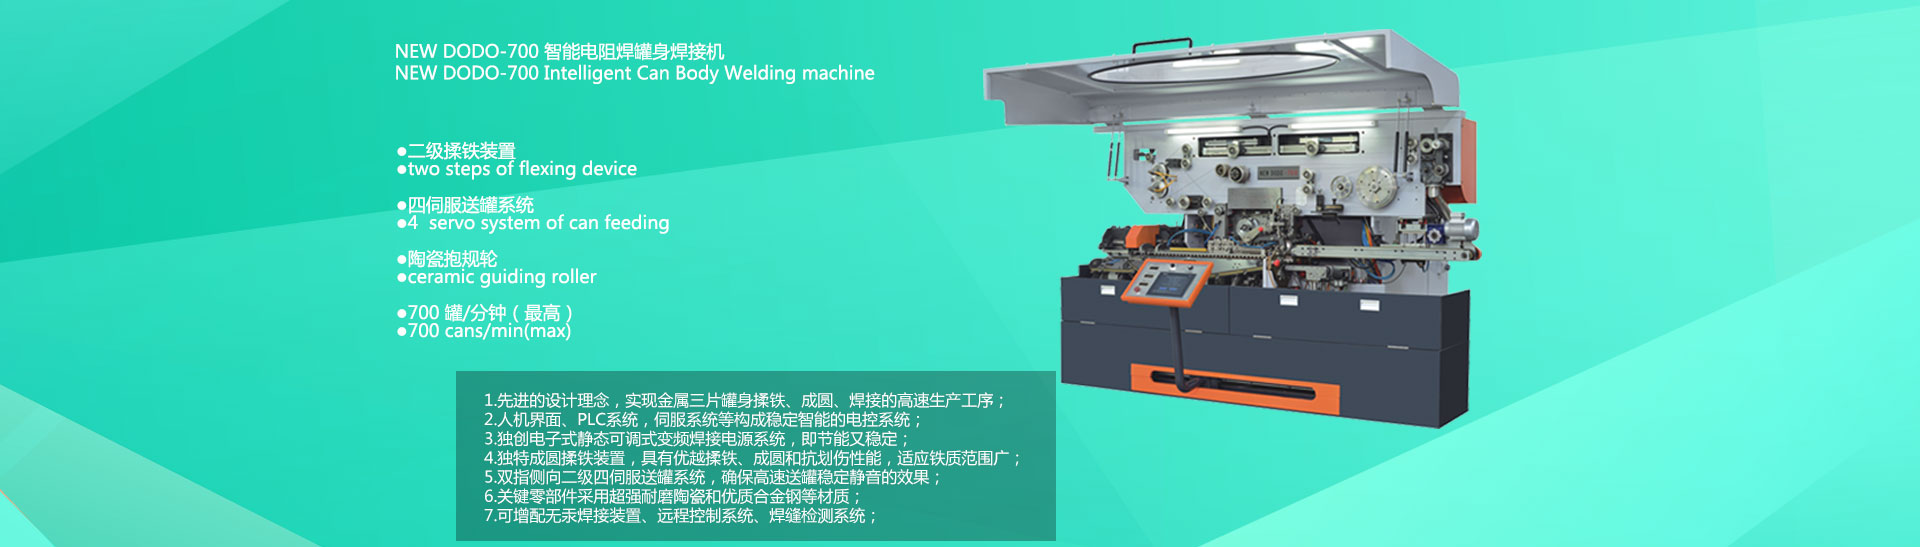 NEW DODO-700 Intelligent Can Body Welding machine